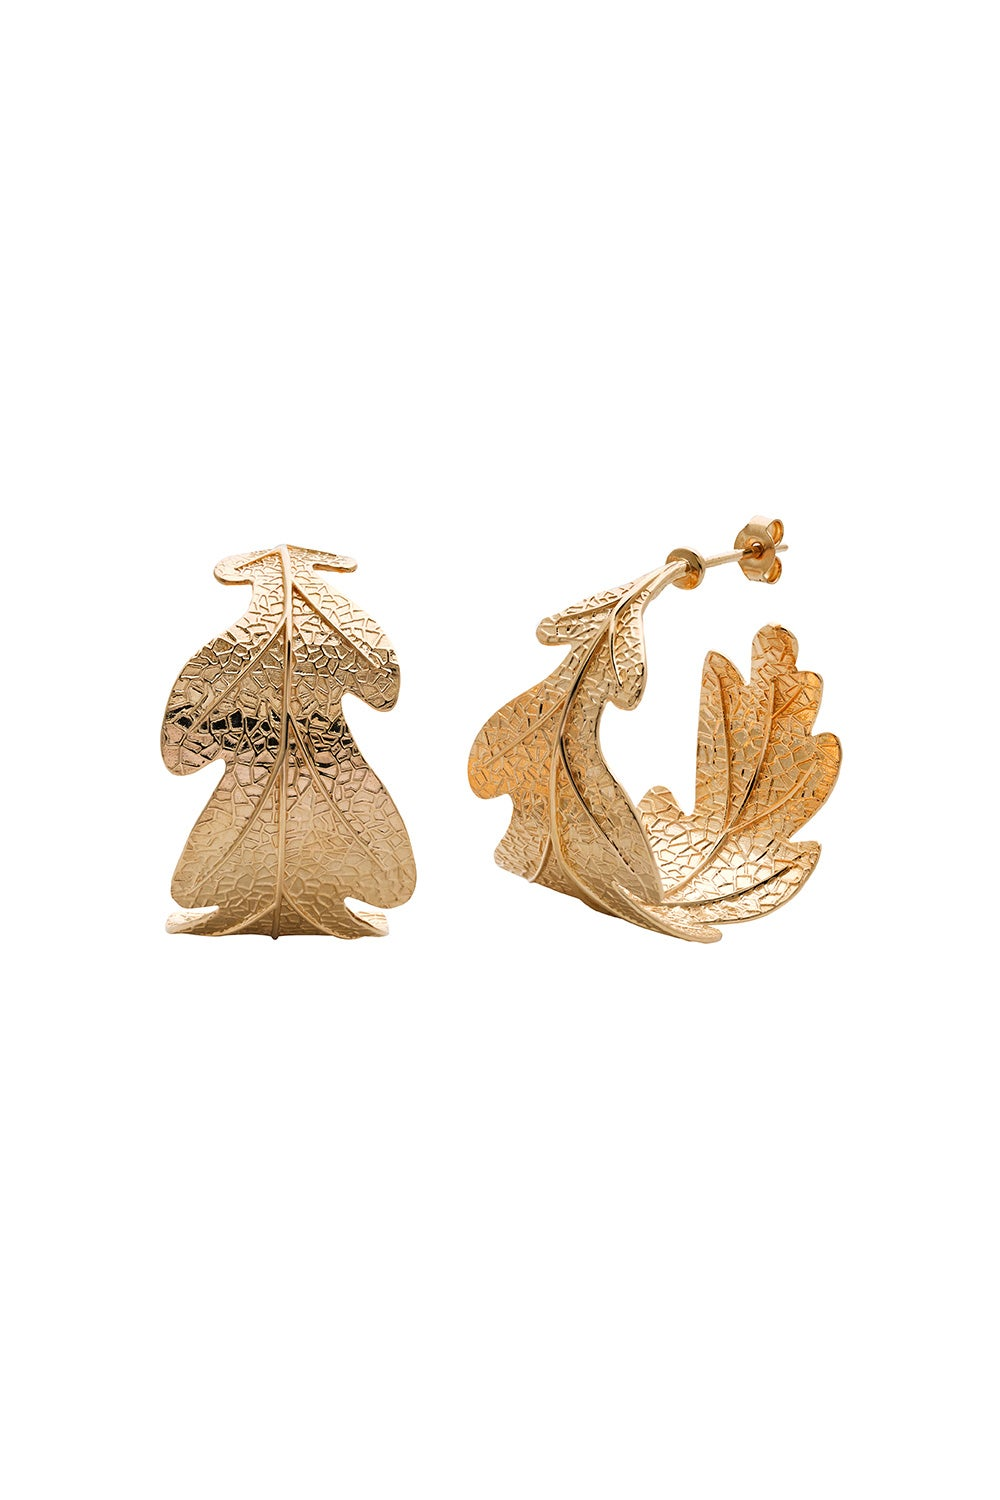 Oak Leaf Earrings Gold-Plated